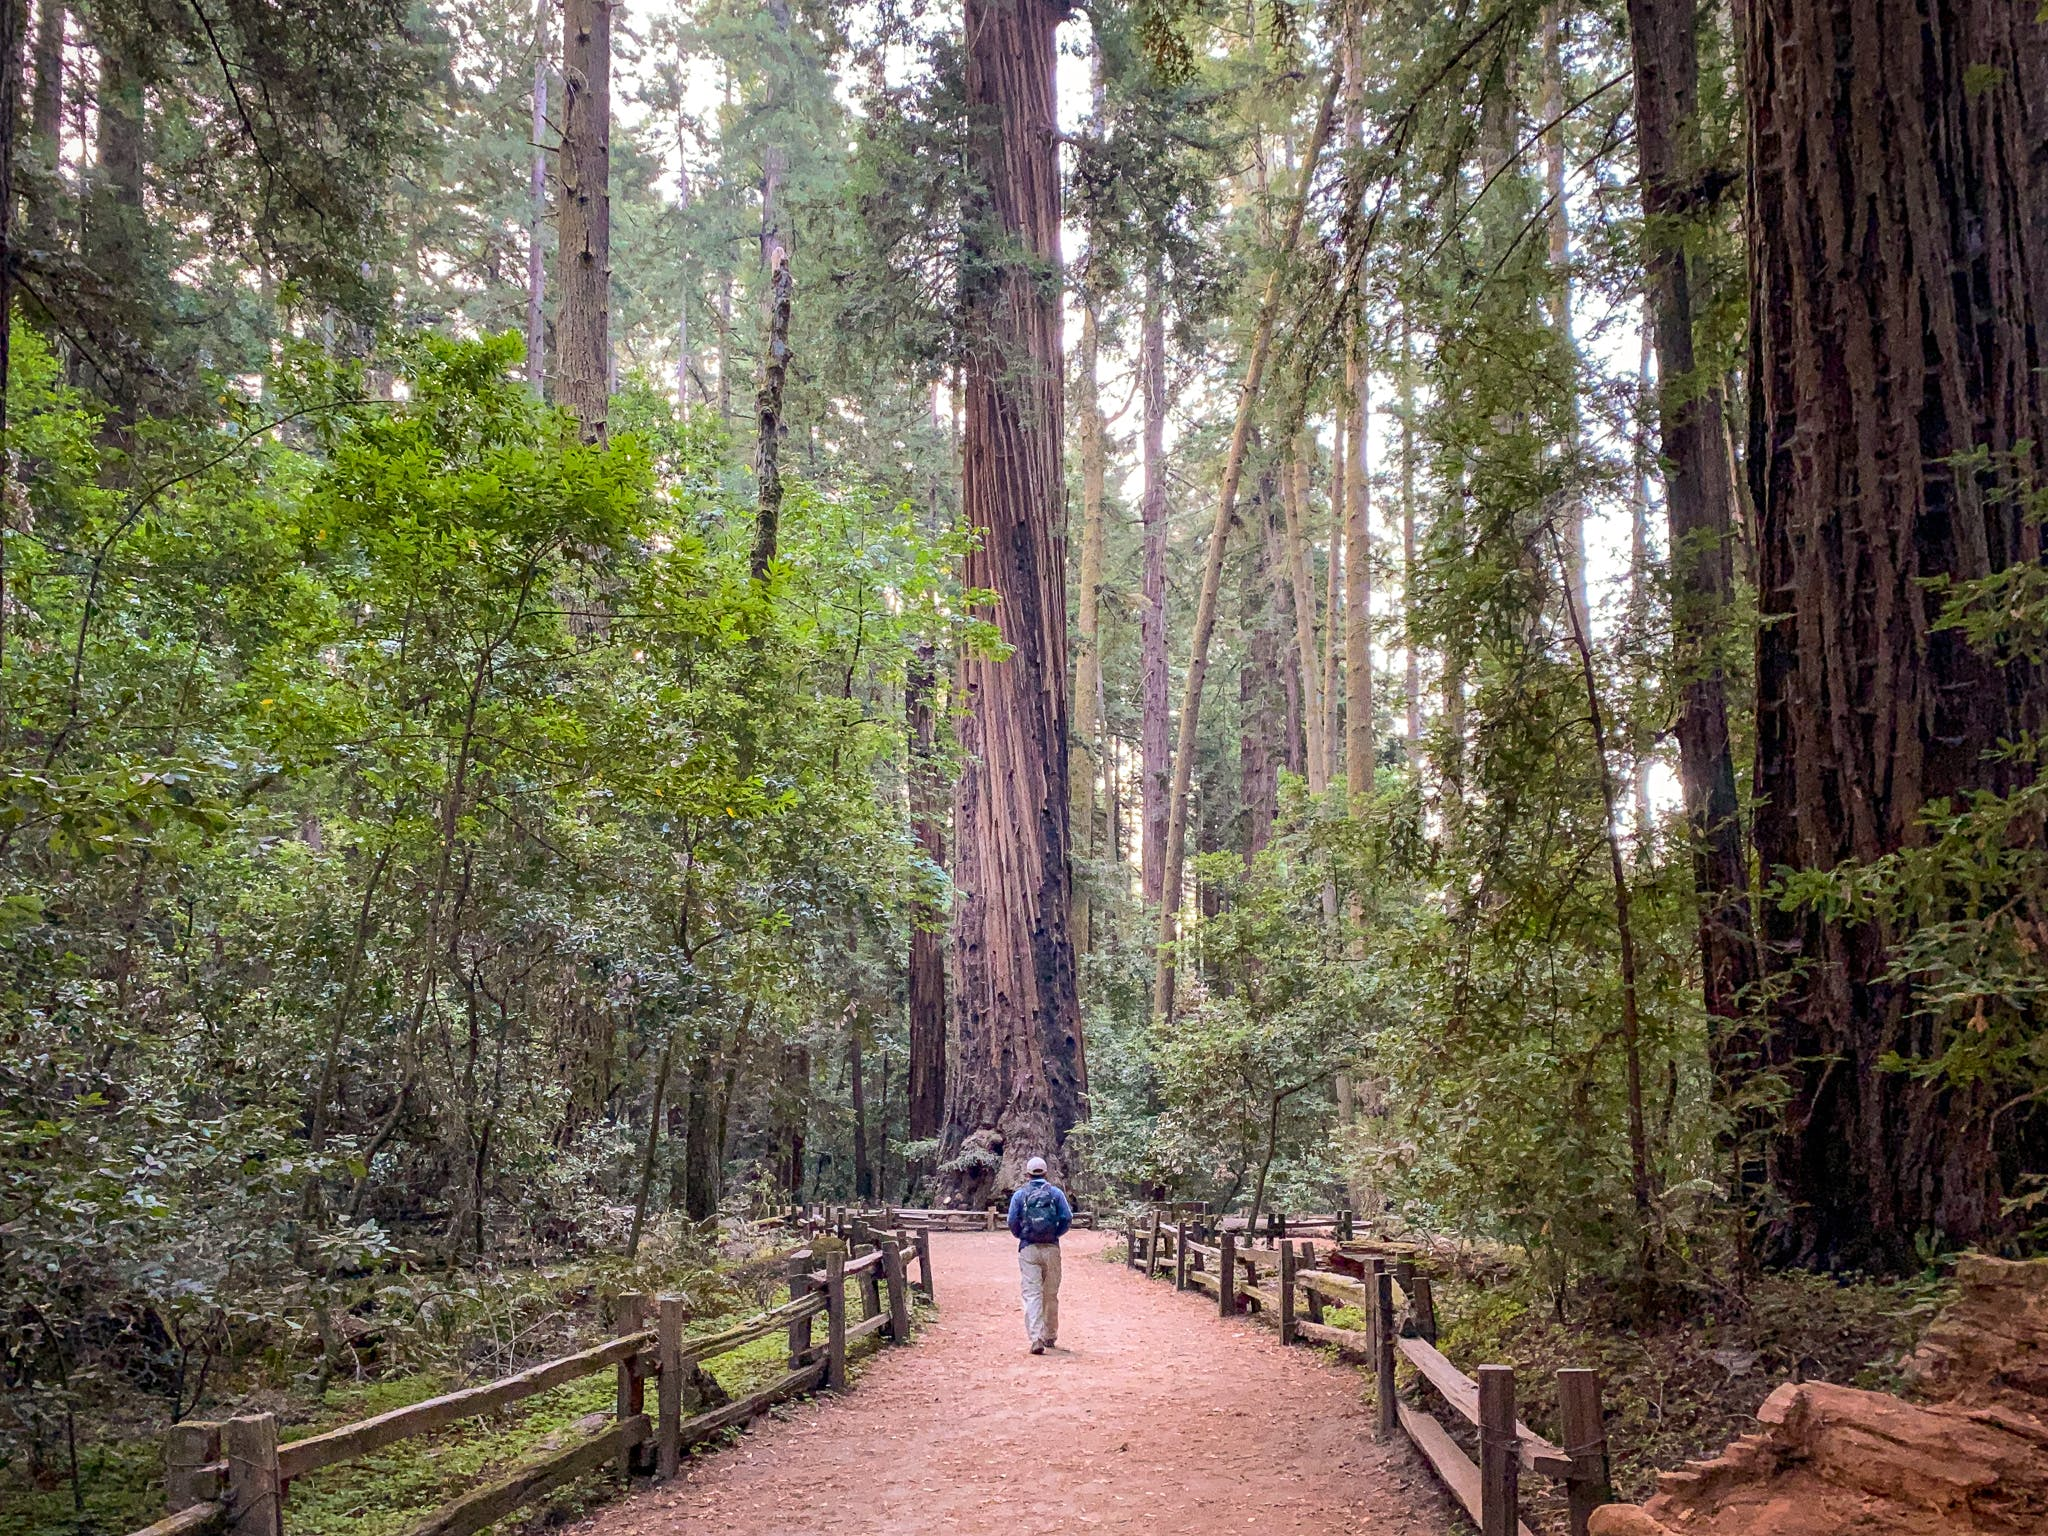 Person standing in the Redwoods Grove at Henry Cowell State Park in the Santa Cruz Mountains